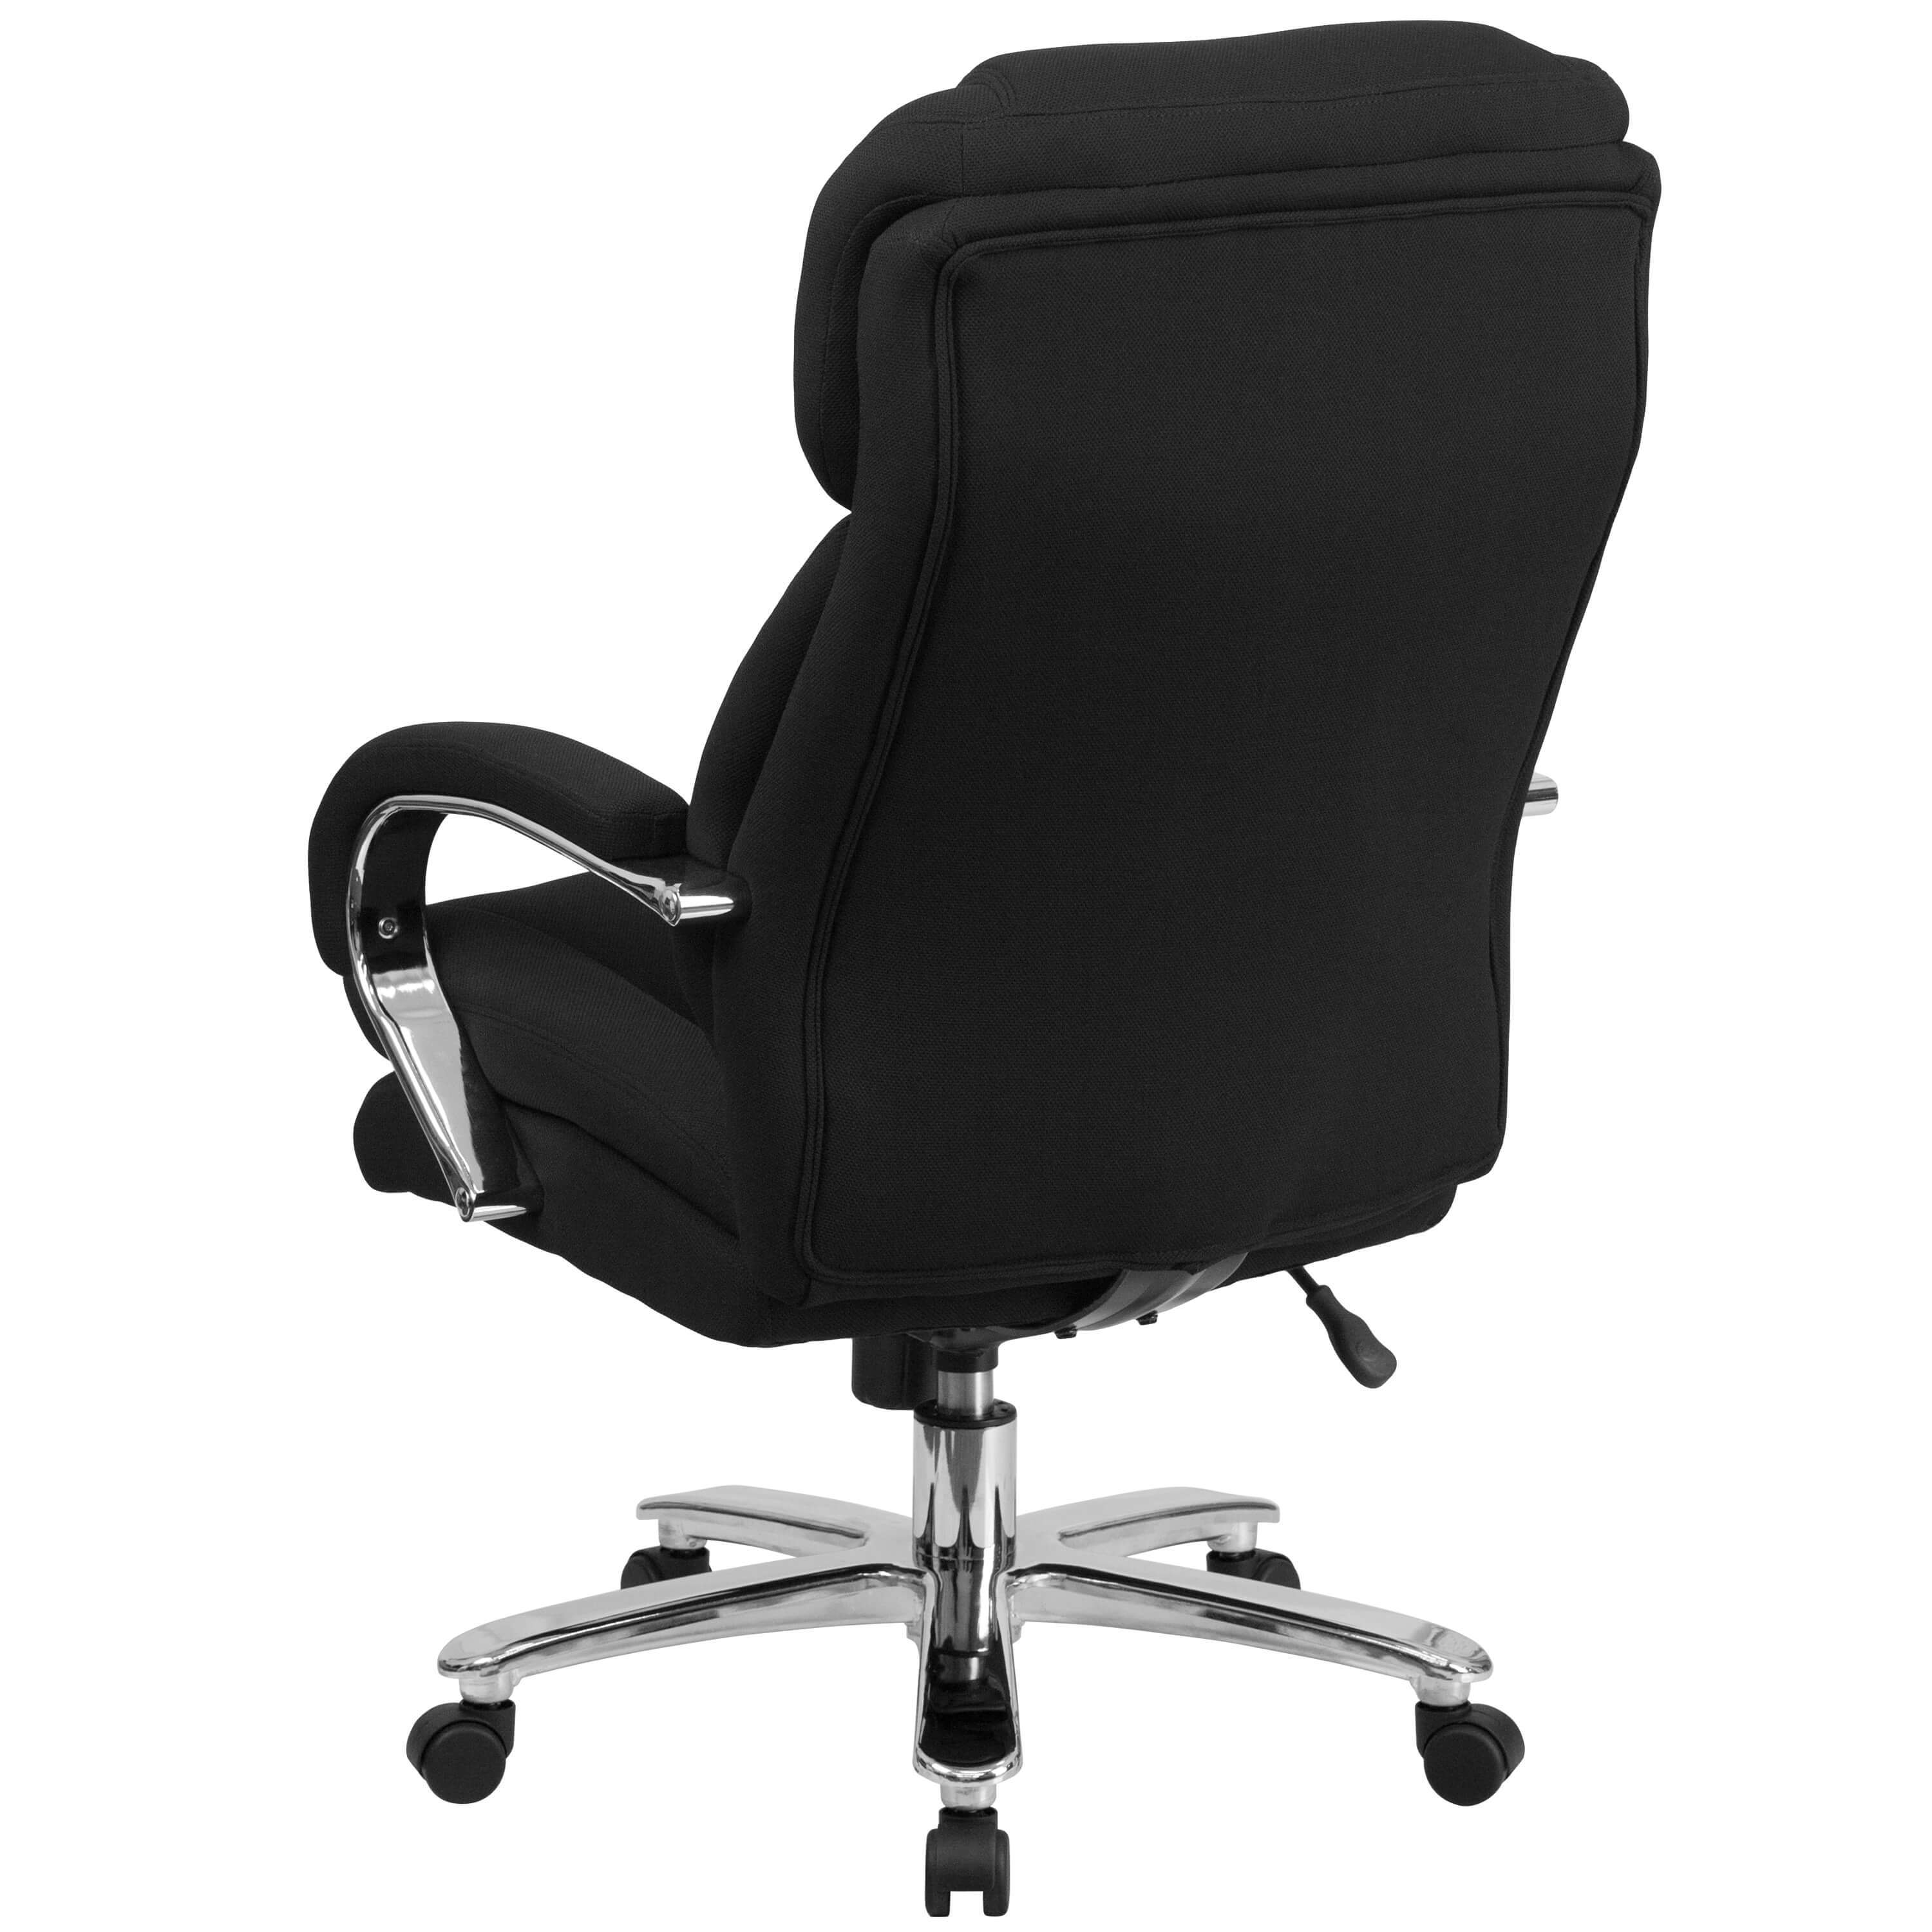 500 lb office chair wave hill resilience heavy duty chairs